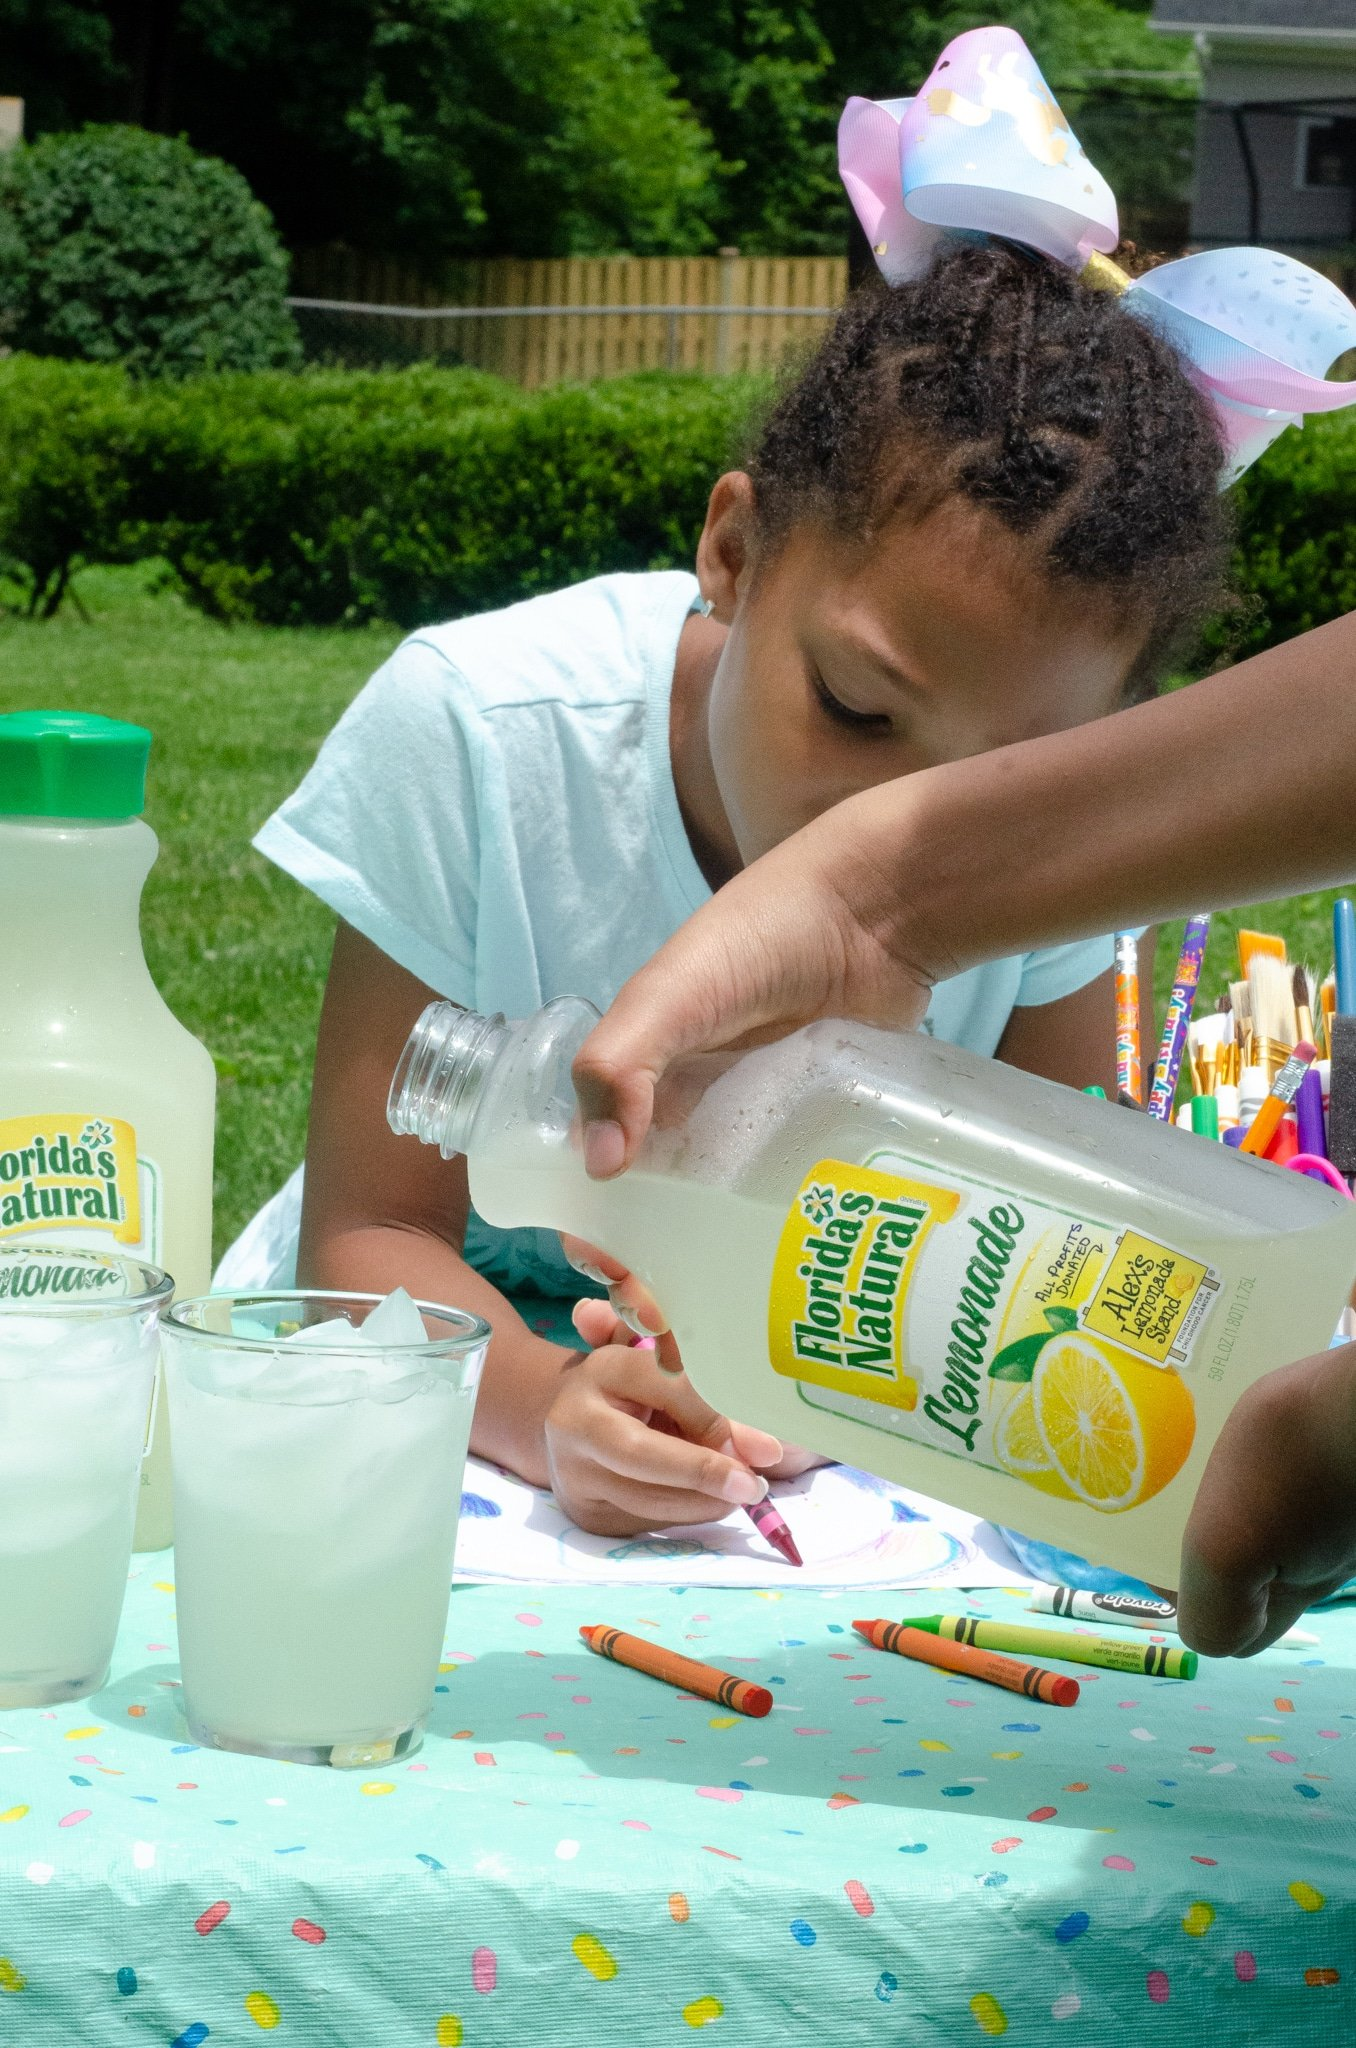 Lemonade Inspired Art Pouring Lemonade. Looking for a fun way to keep the kids entertained this summer? Celebrate the start of summer with Lemonade-Inspired Art In the Backyard.